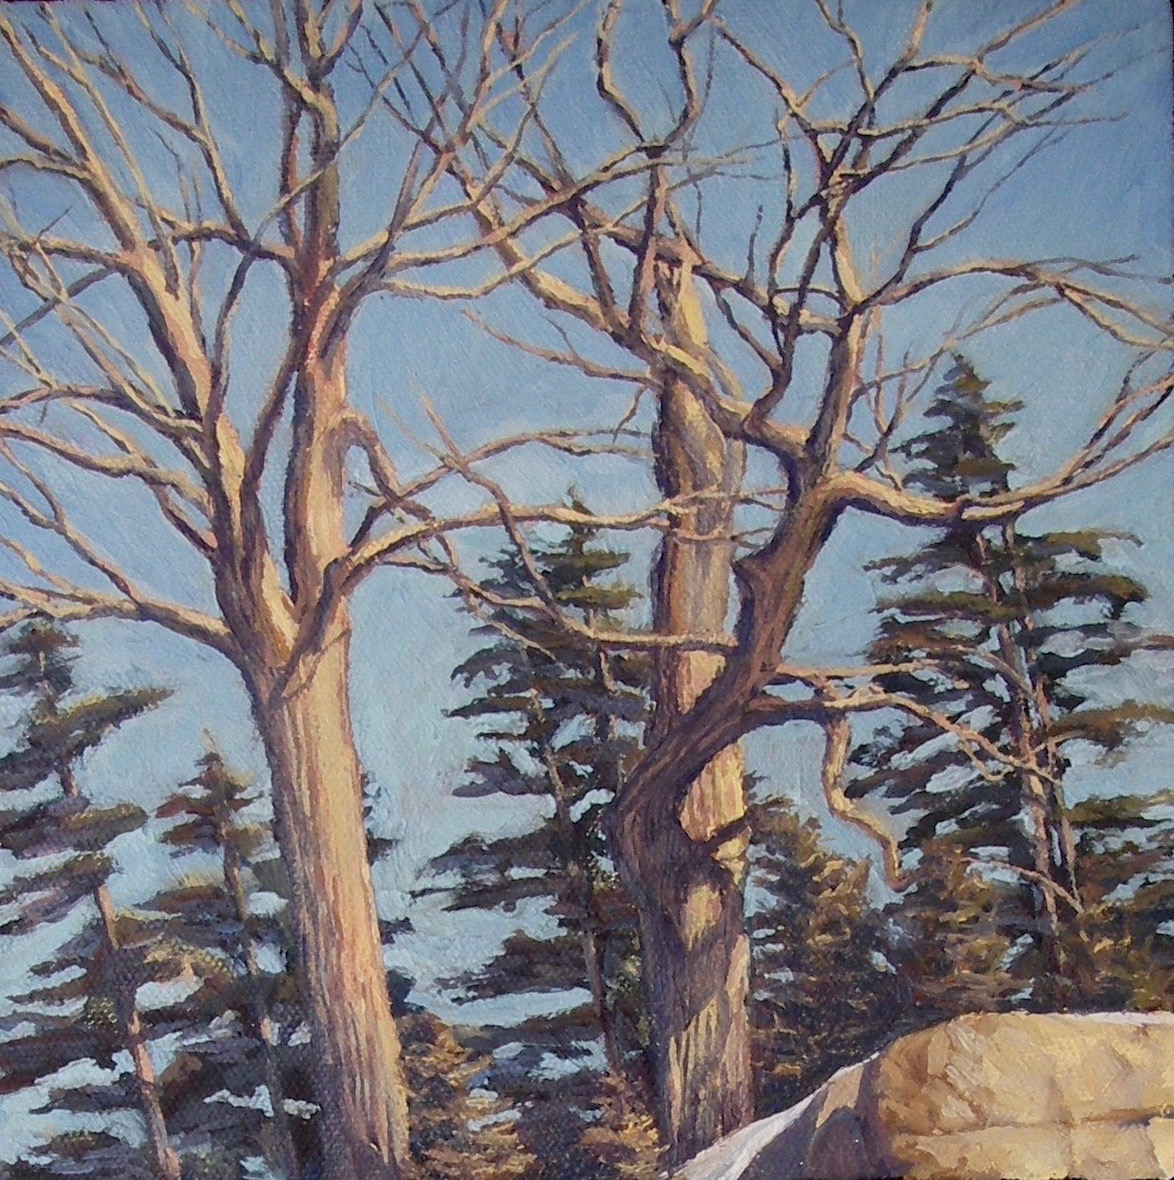 East of Kingston (Top of diptych)